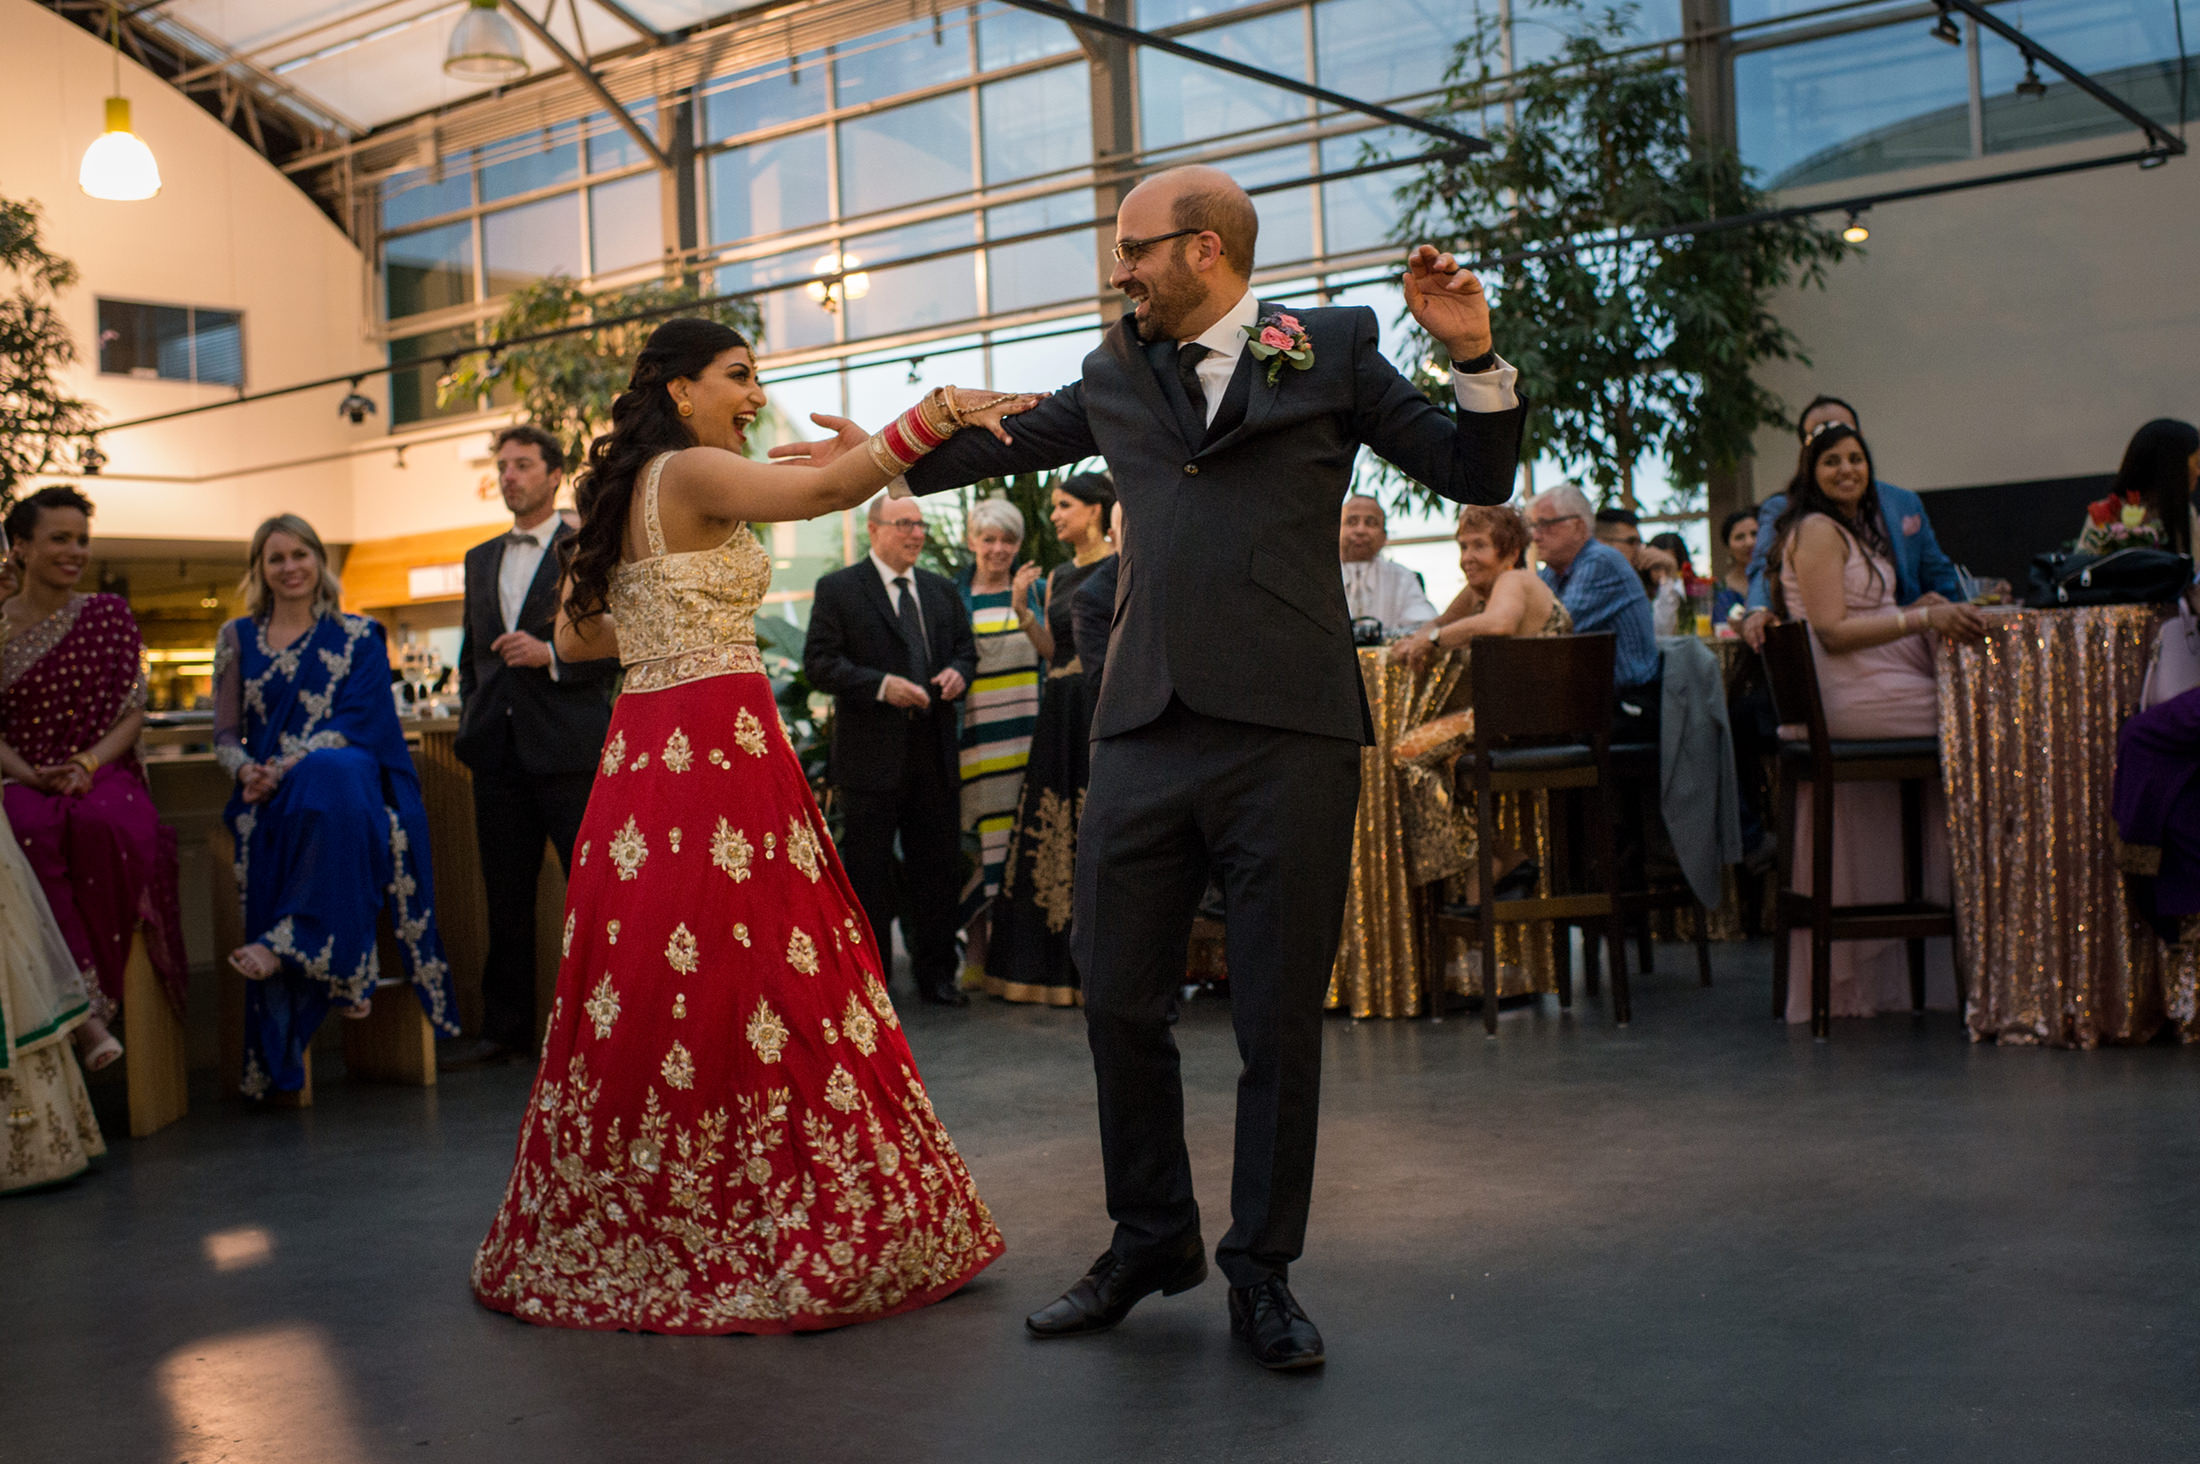 Edmonton_wedding_photographers_enjoy_center_wedding_Kiran_faisal_37.jpg